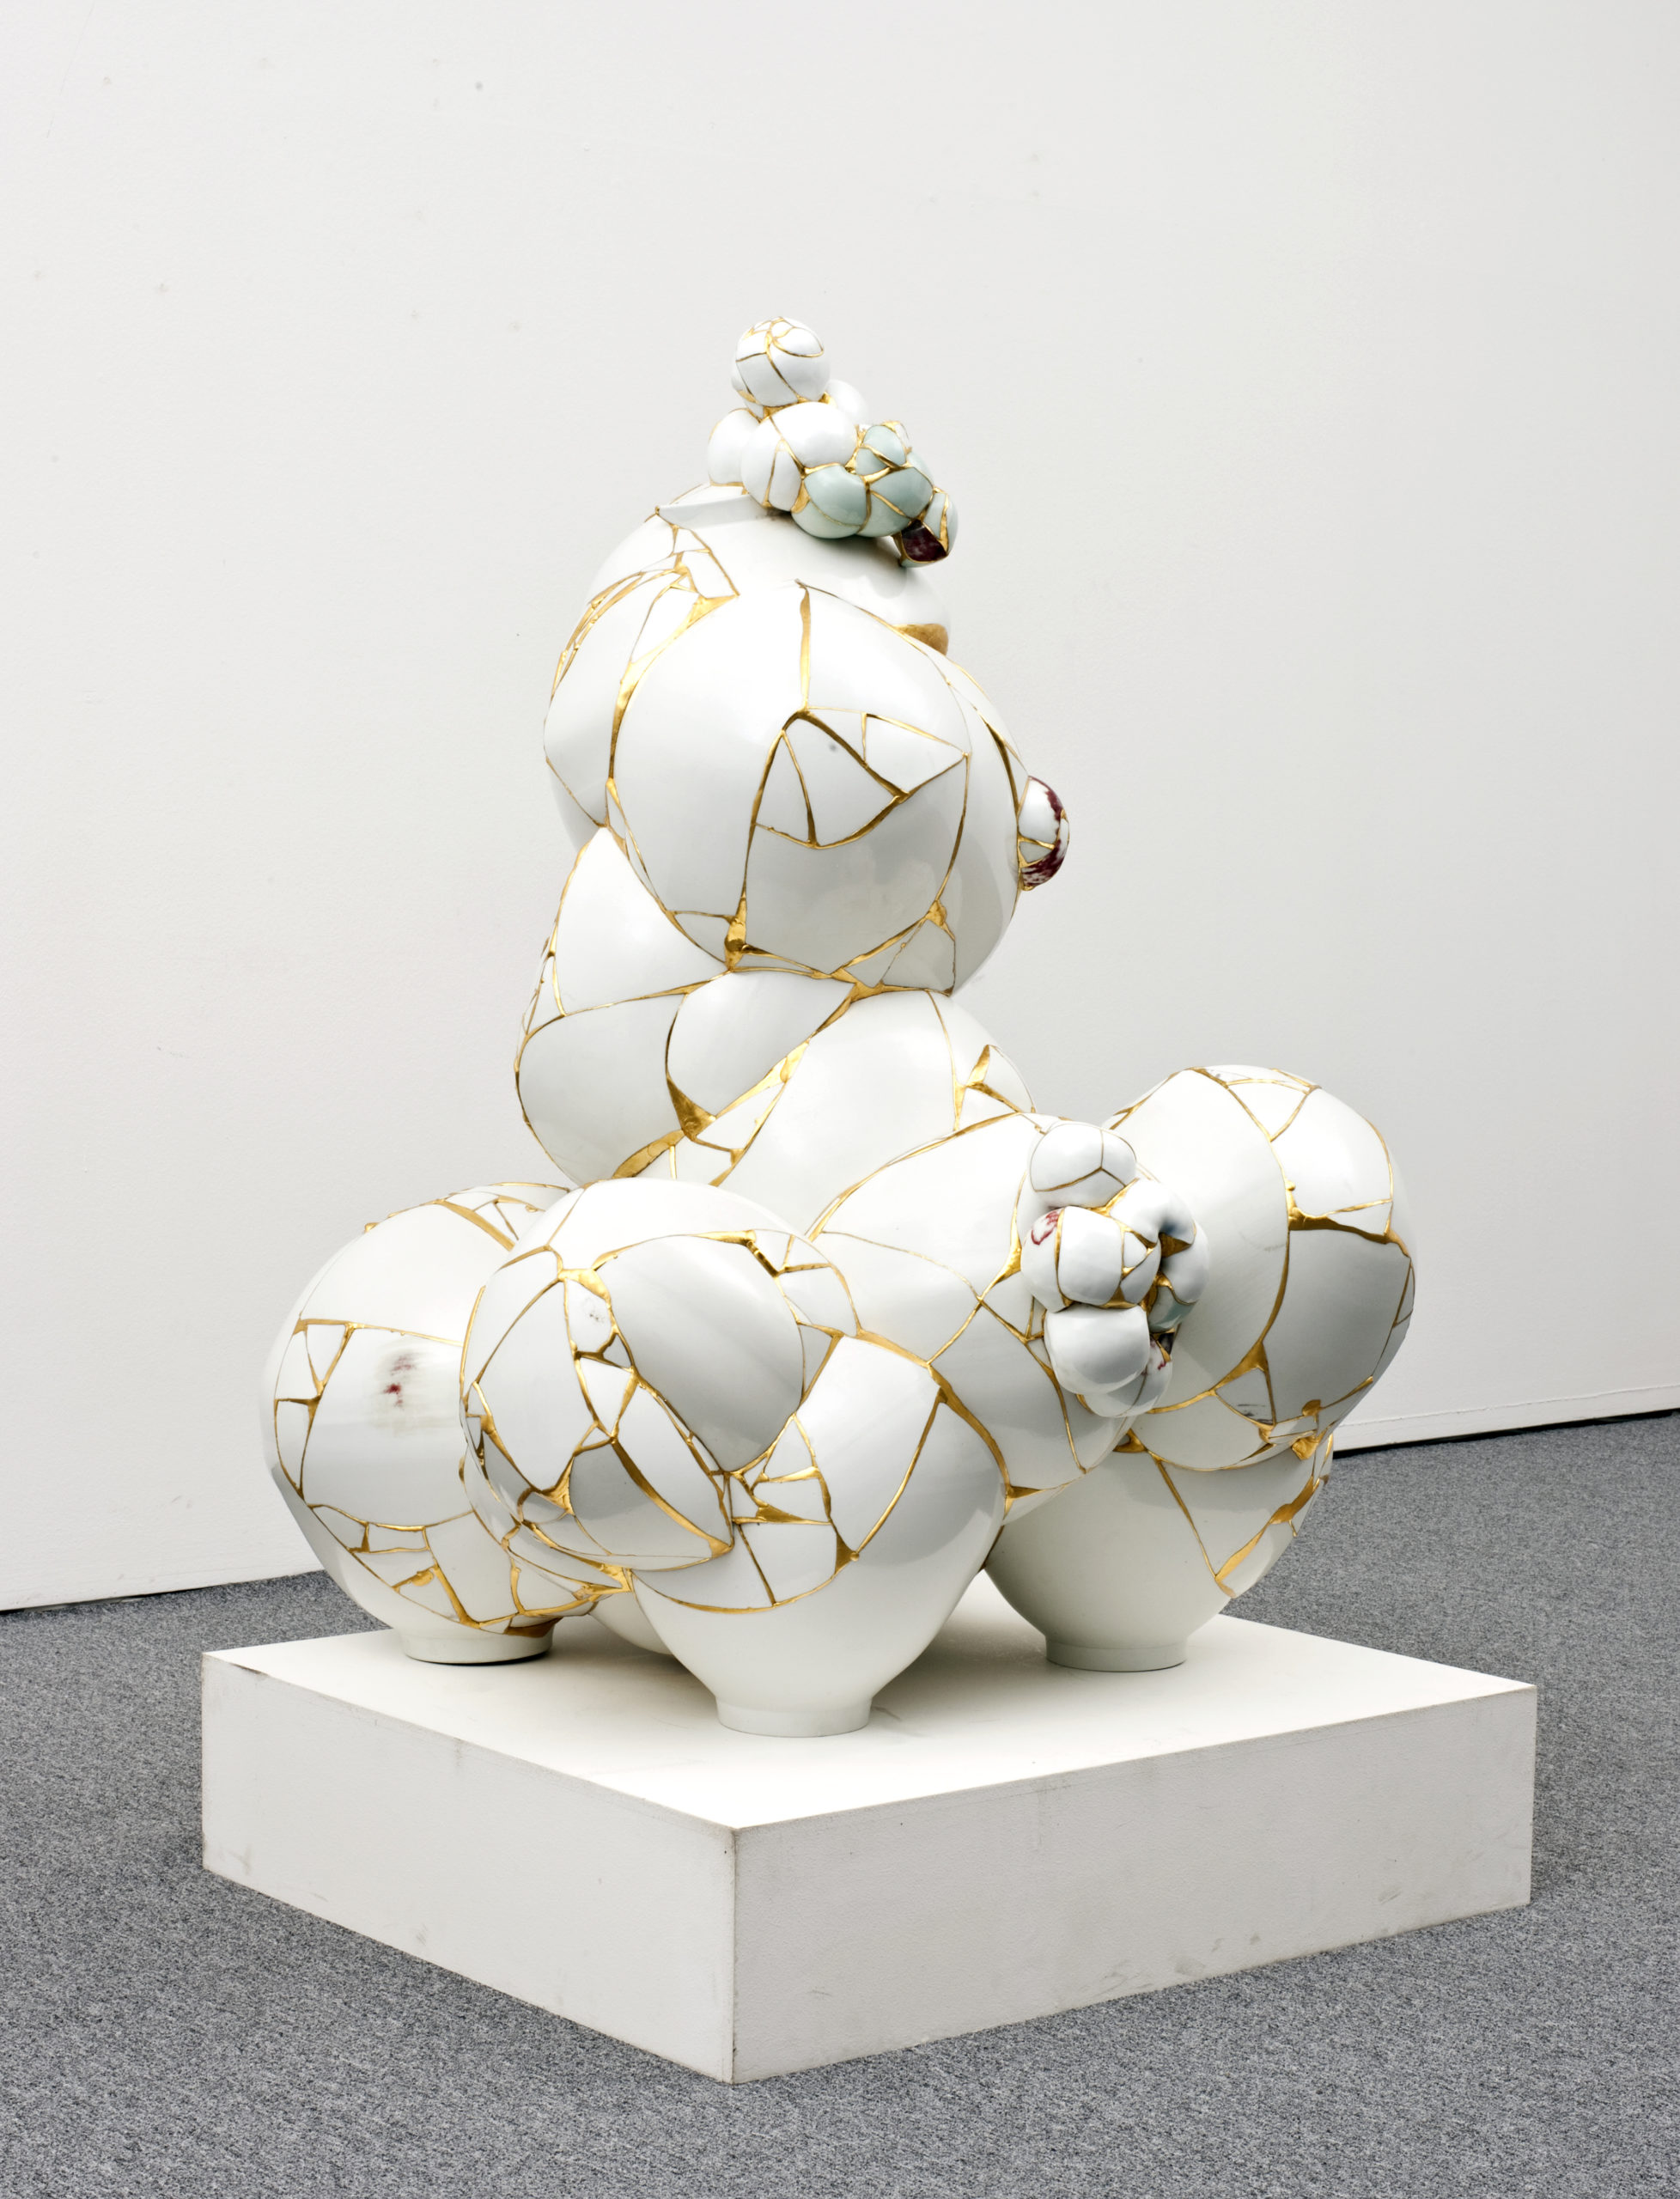 A sculpture made of a series of broken porcelain sherds fused together with gold leaf to create a series of irregular spherical shapes resembling bubbles joined together.